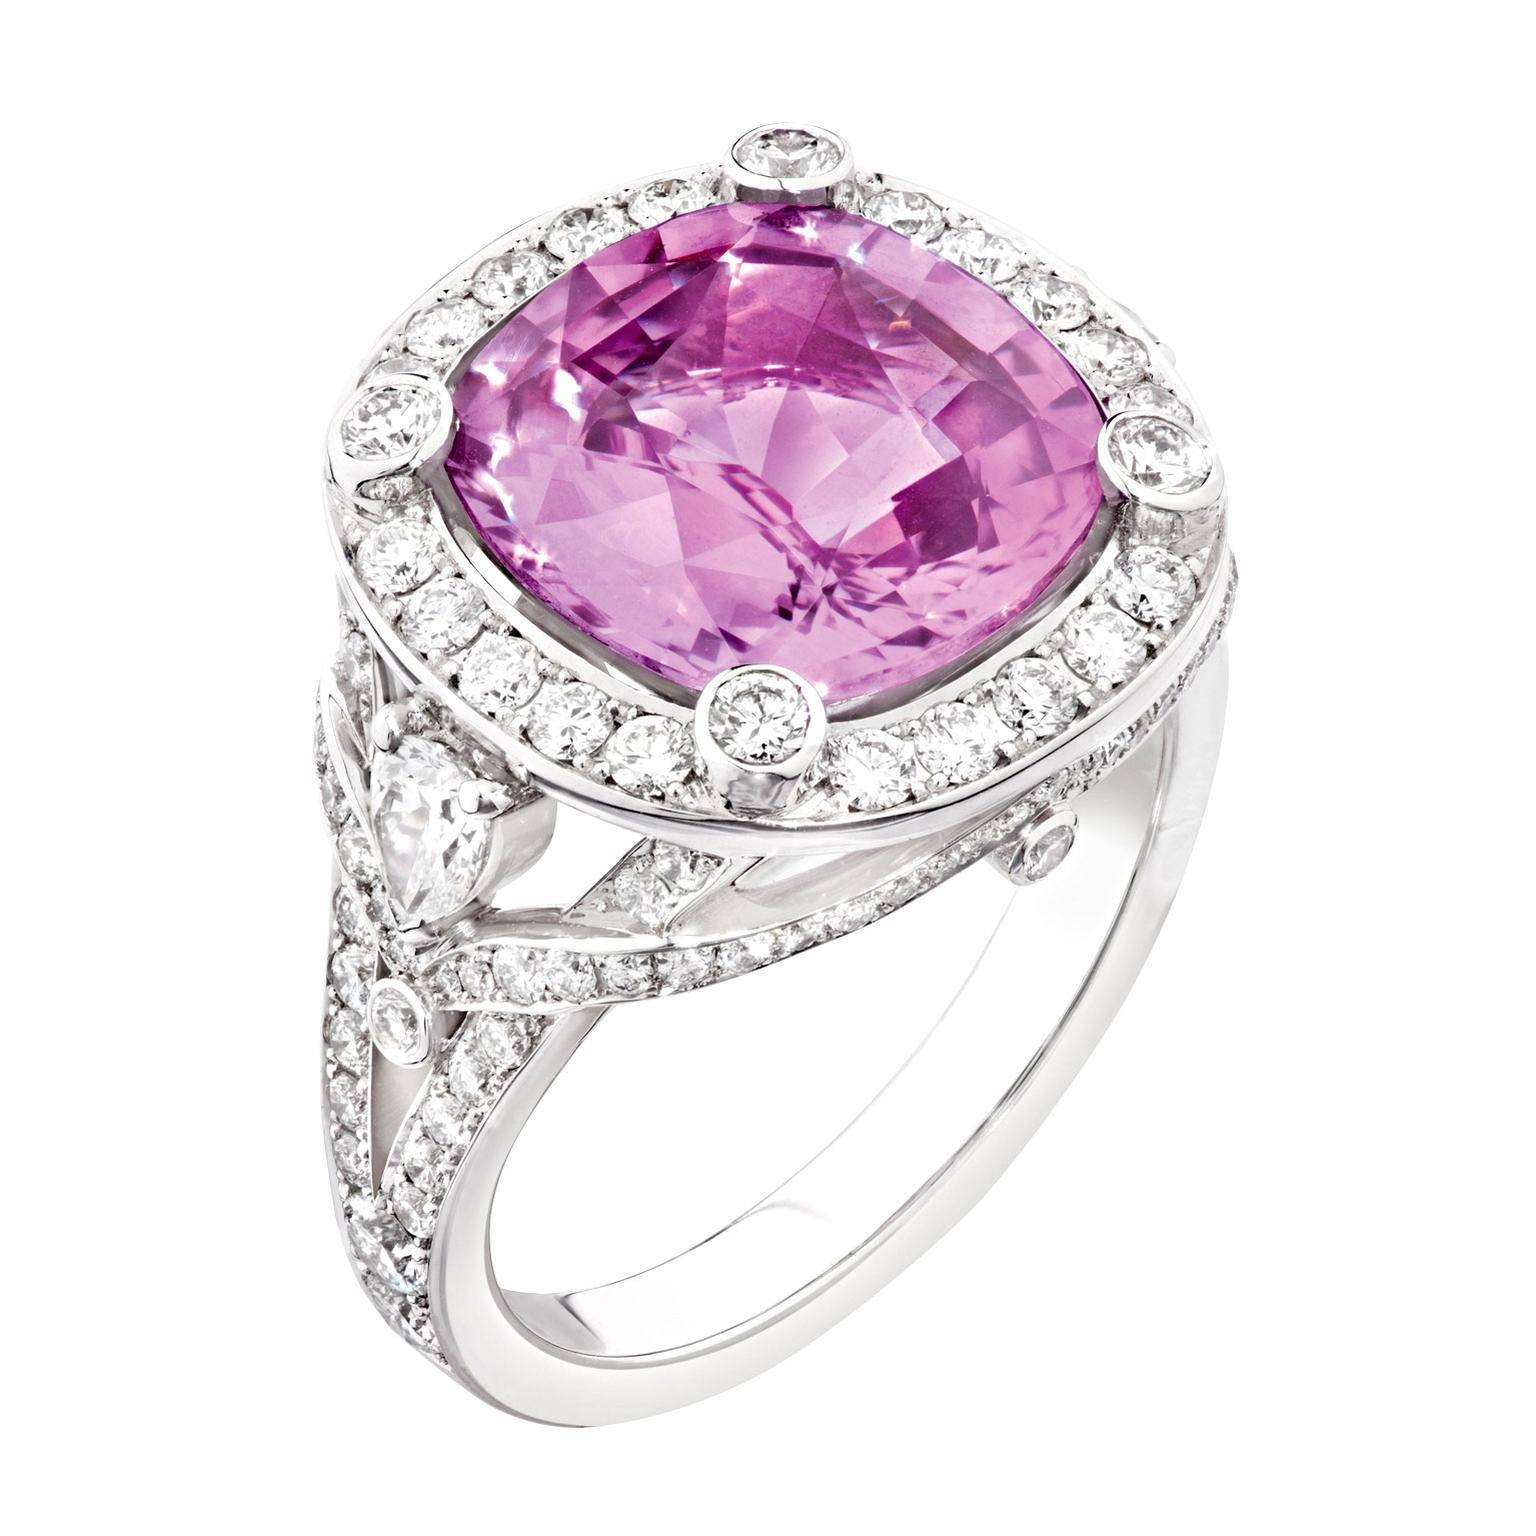 Cushion Cut Pink Sapphire Engagement Ring | Fabergé | The Intended For Pink Sapphire Engagement Rings With Diamonds (Gallery 11 of 15)